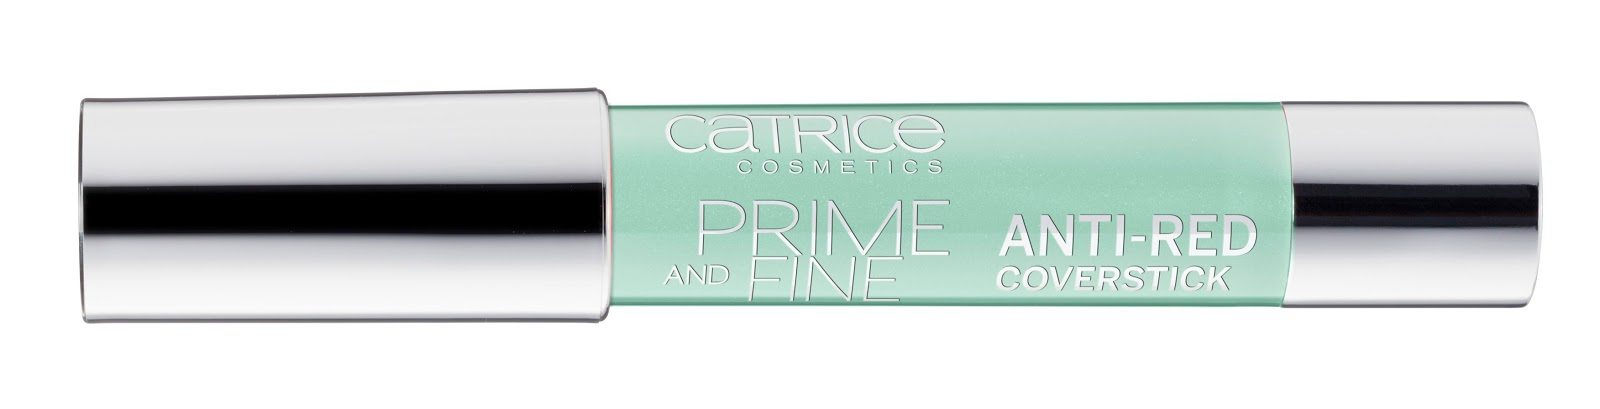 Catrice - Prime And Fine Anti-Red Coverstick